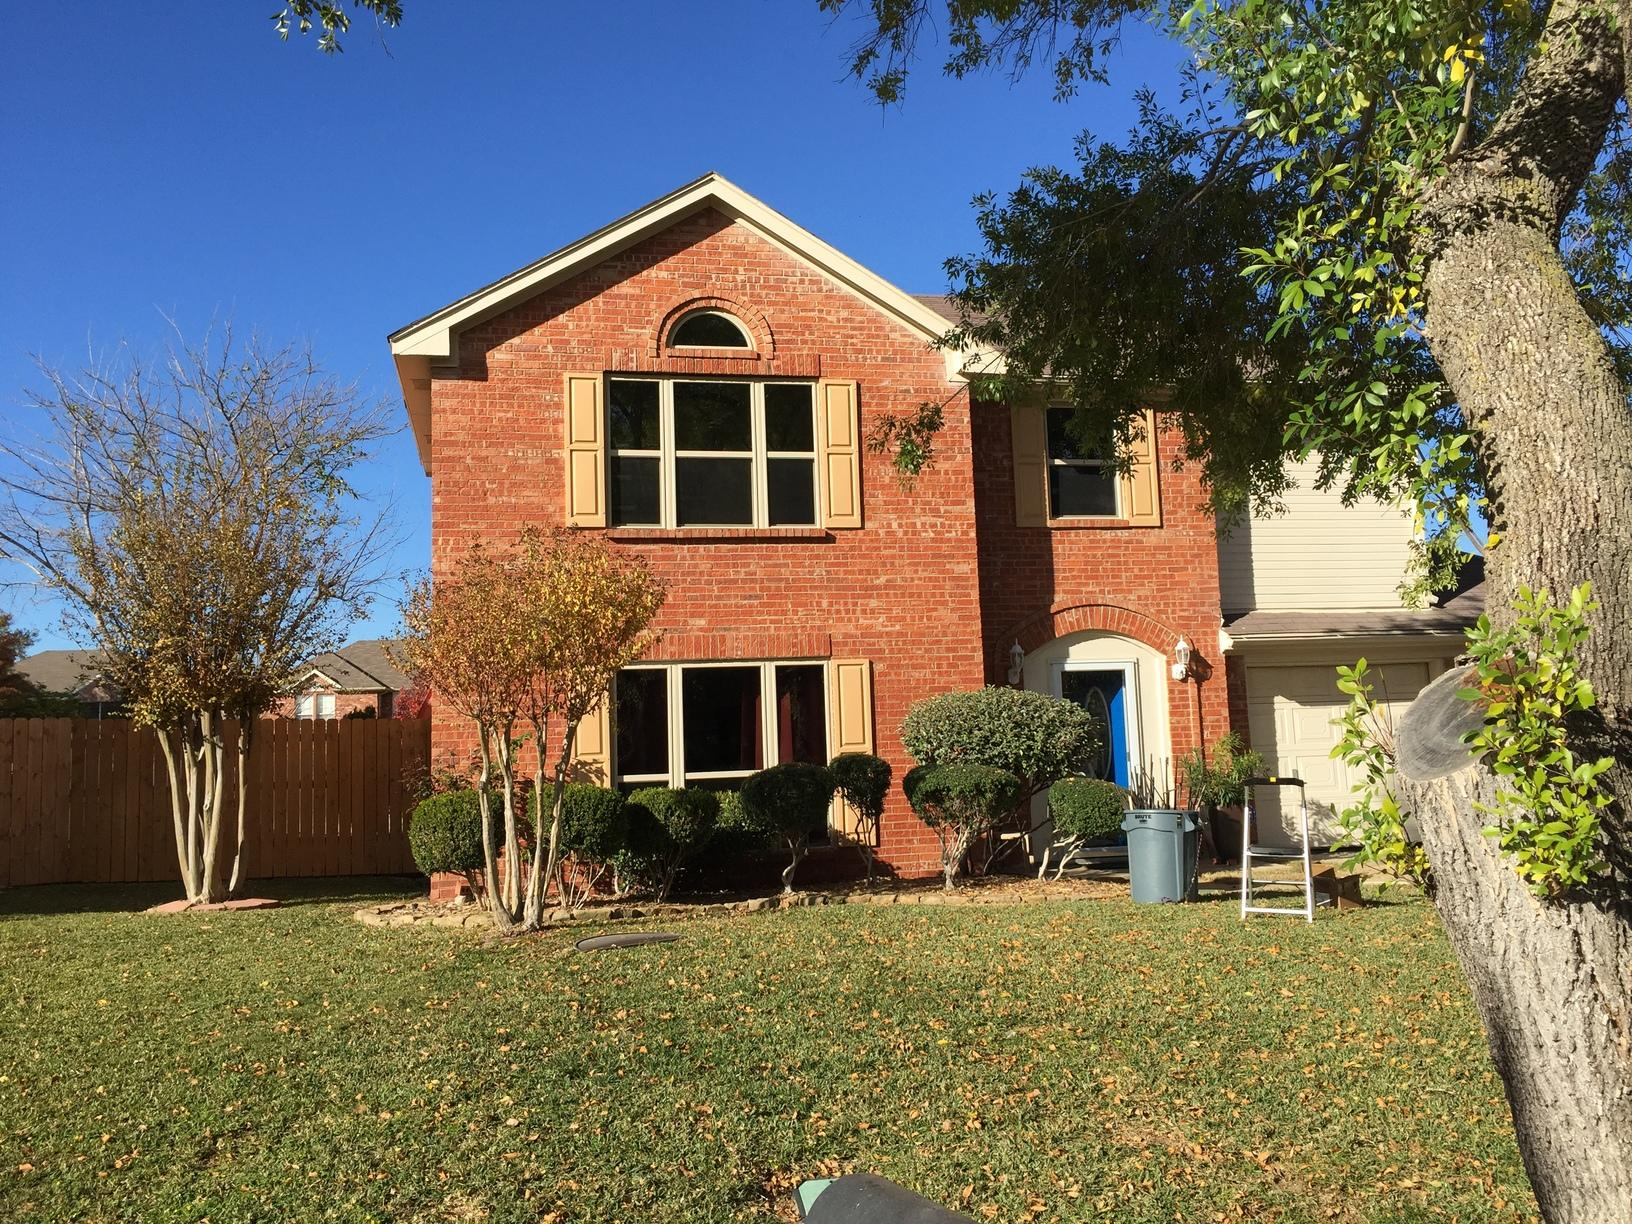 Window Replacement in Rowlett, TX - After Photo